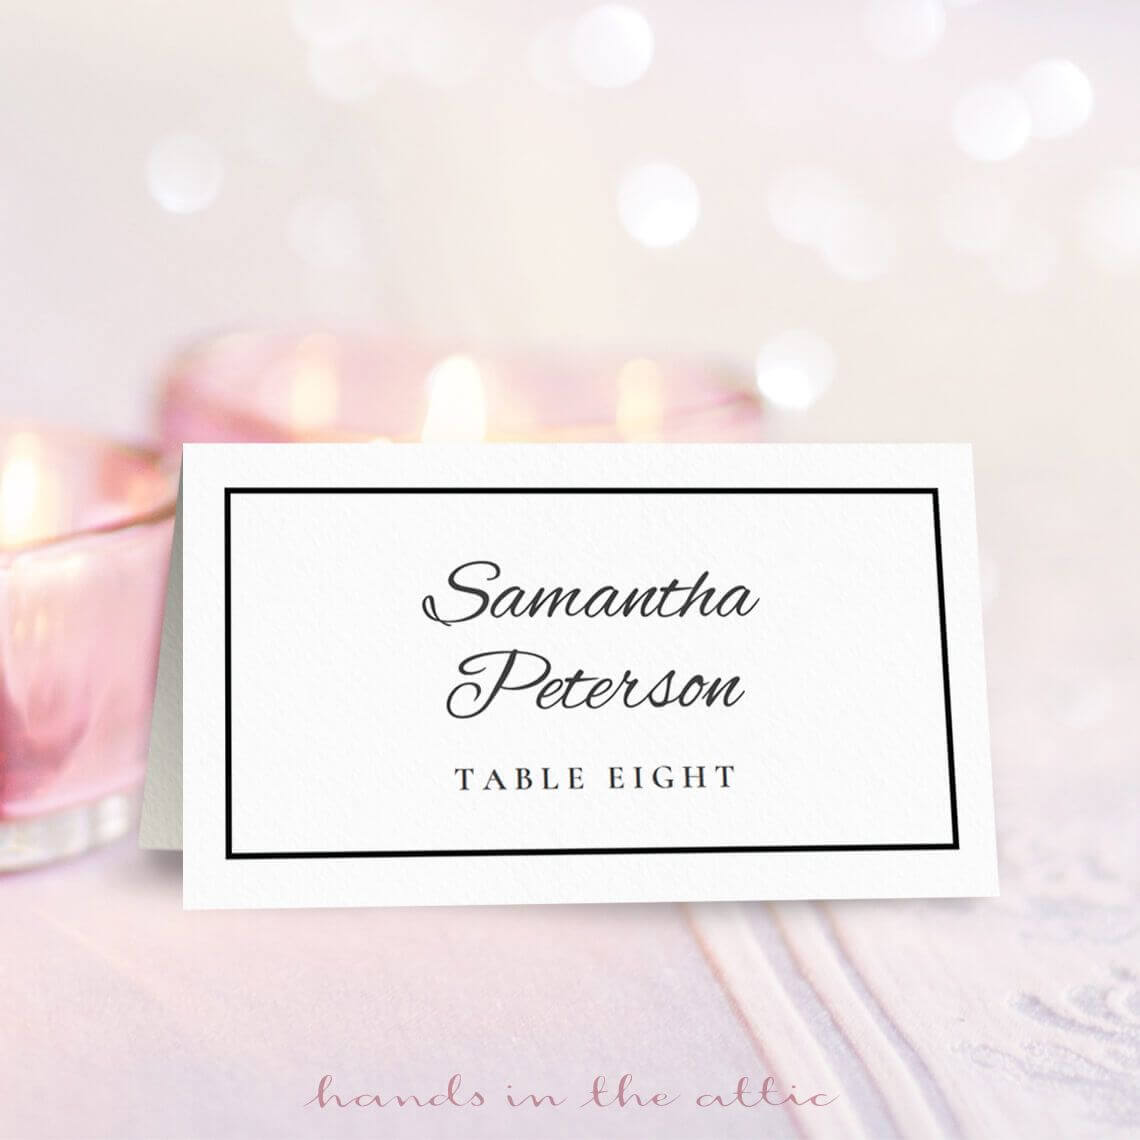 Wedding Place Card Template | Free On Handsintheattic In Free Place Card Templates Download